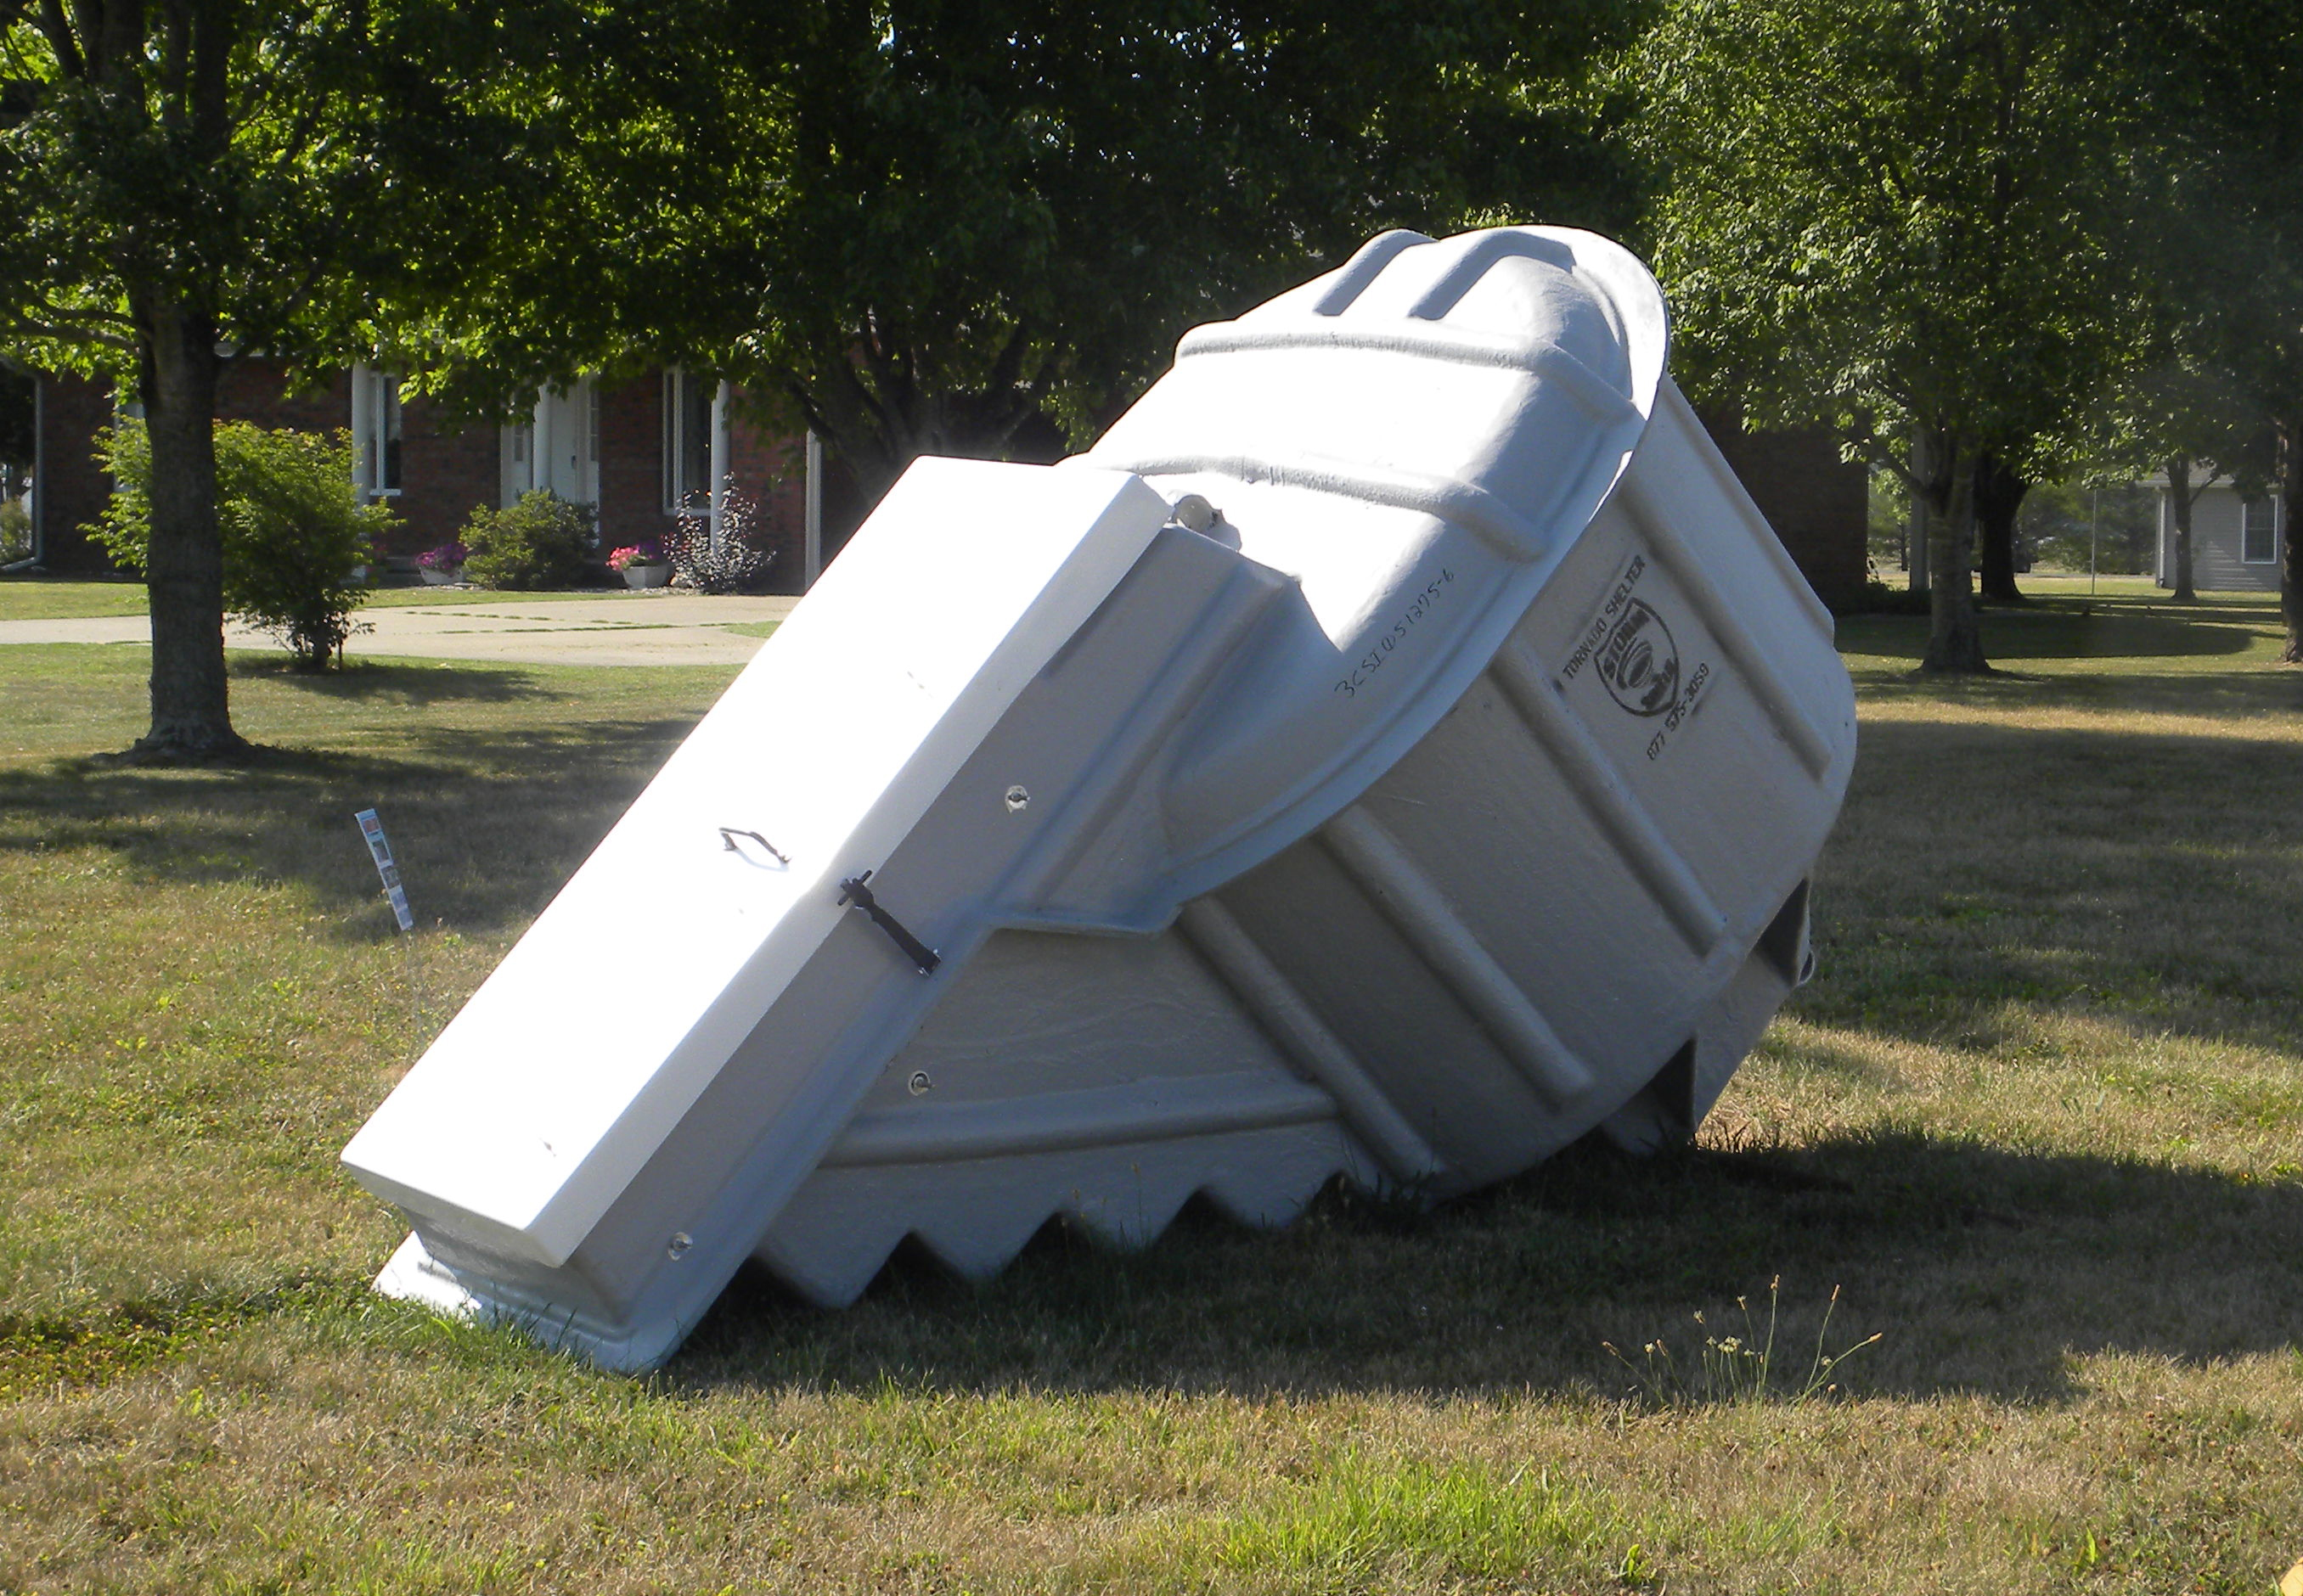 B Ss Uninstalled Our Storm Shelter Designs Are Continually Scrutinized